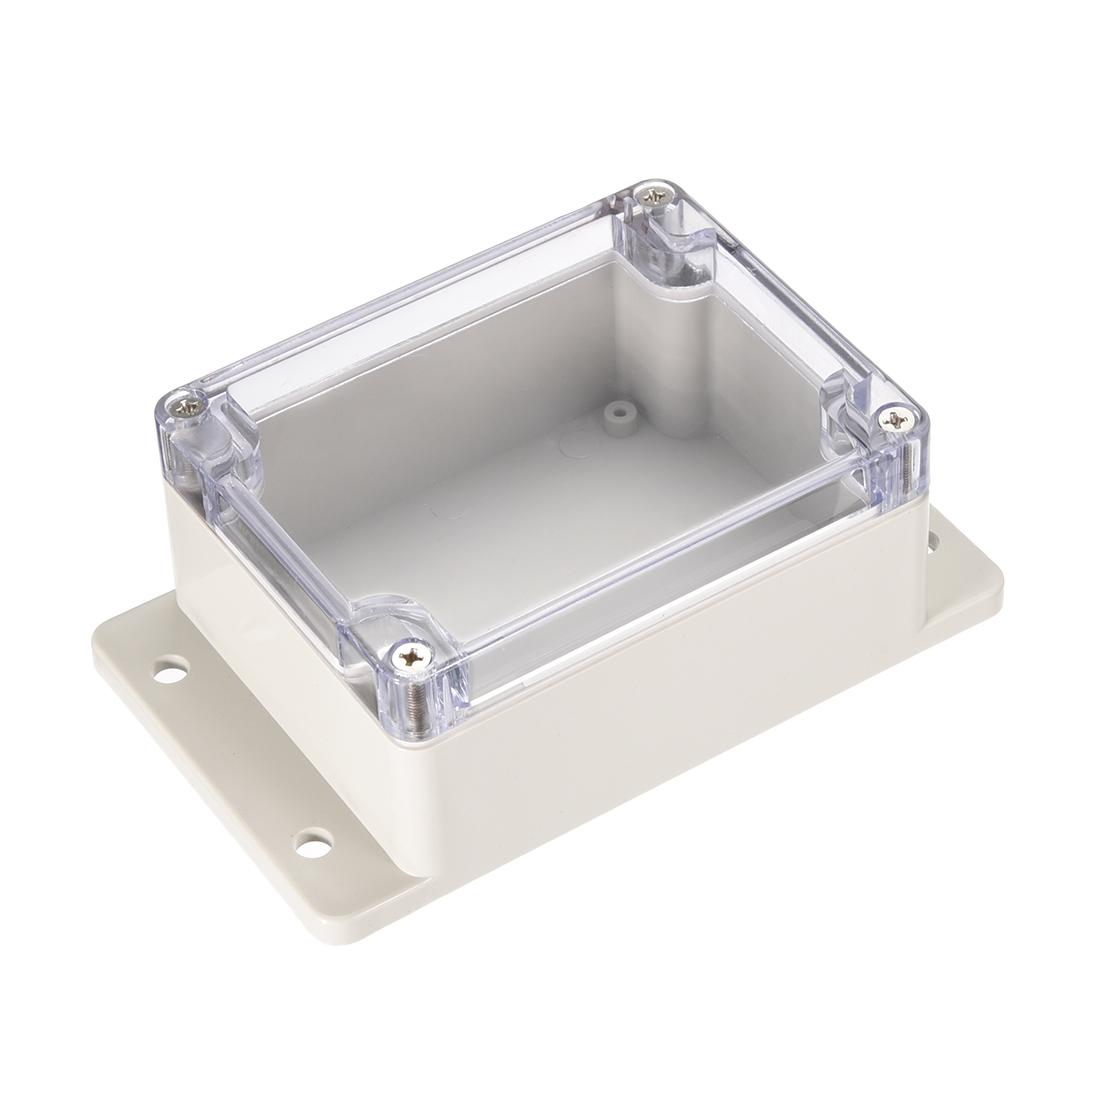 "4.5""x3.5""x2.2""(115mmx90mmx55mm) ABS Junction Box Universal Project Enclosure w PC Transparent Cover"